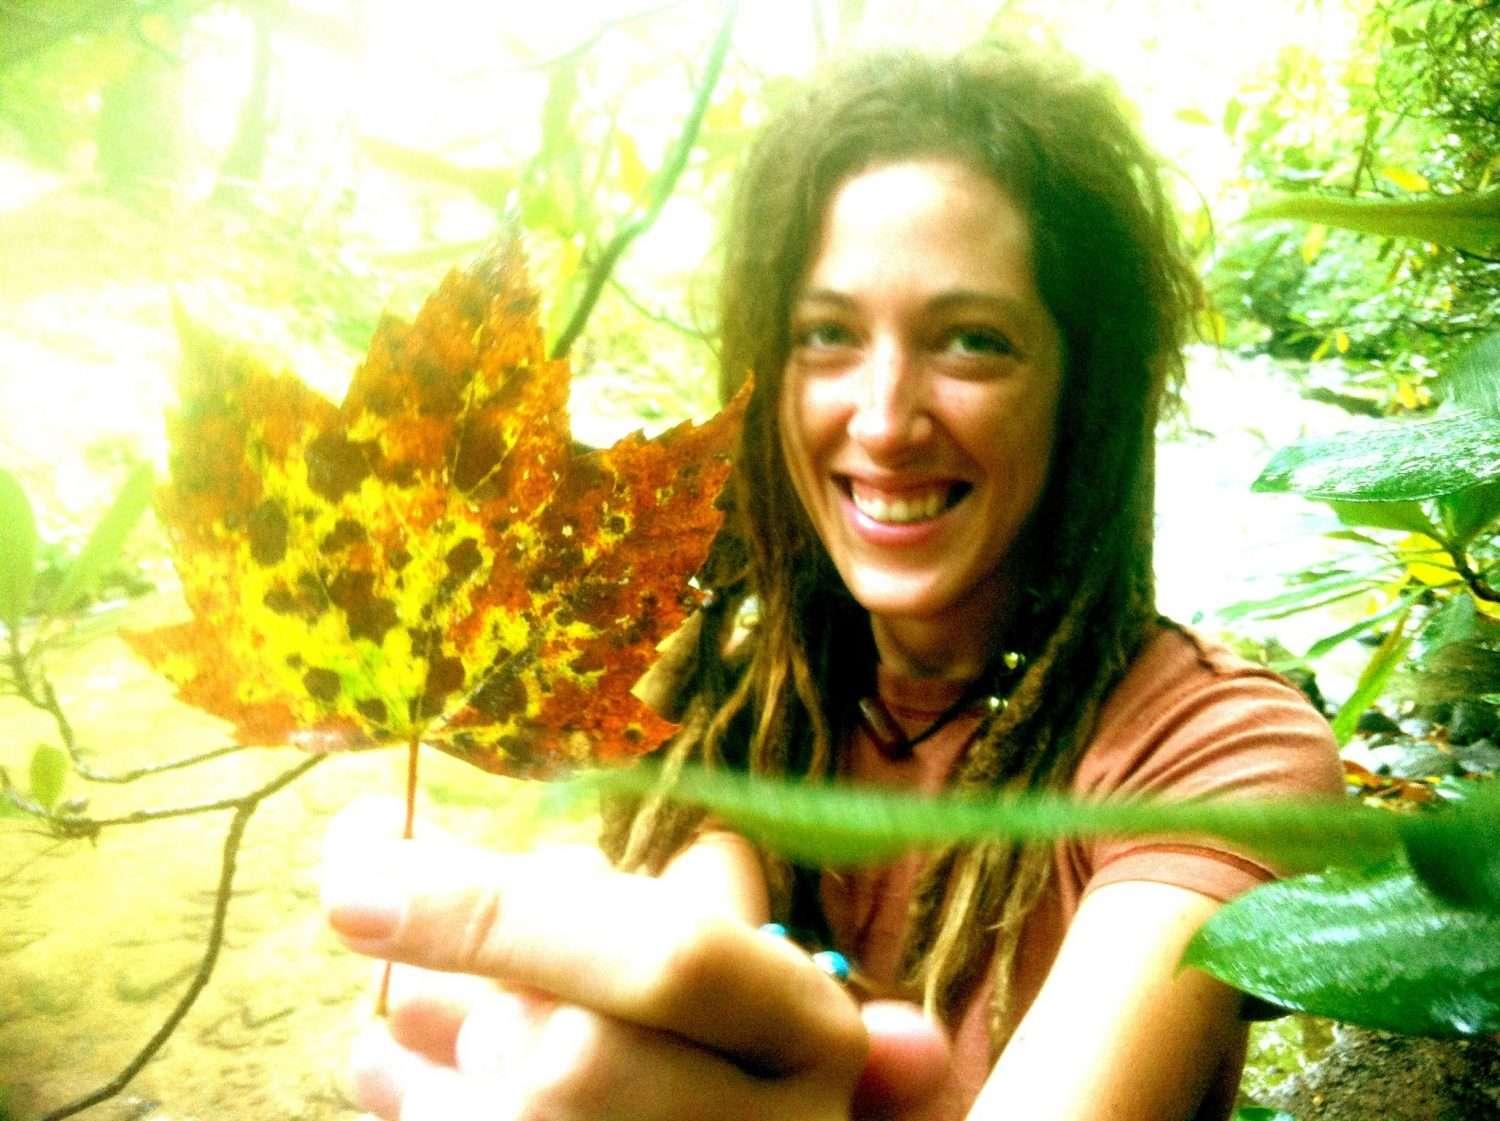 a woman smiling, holding a multi-colored leaf